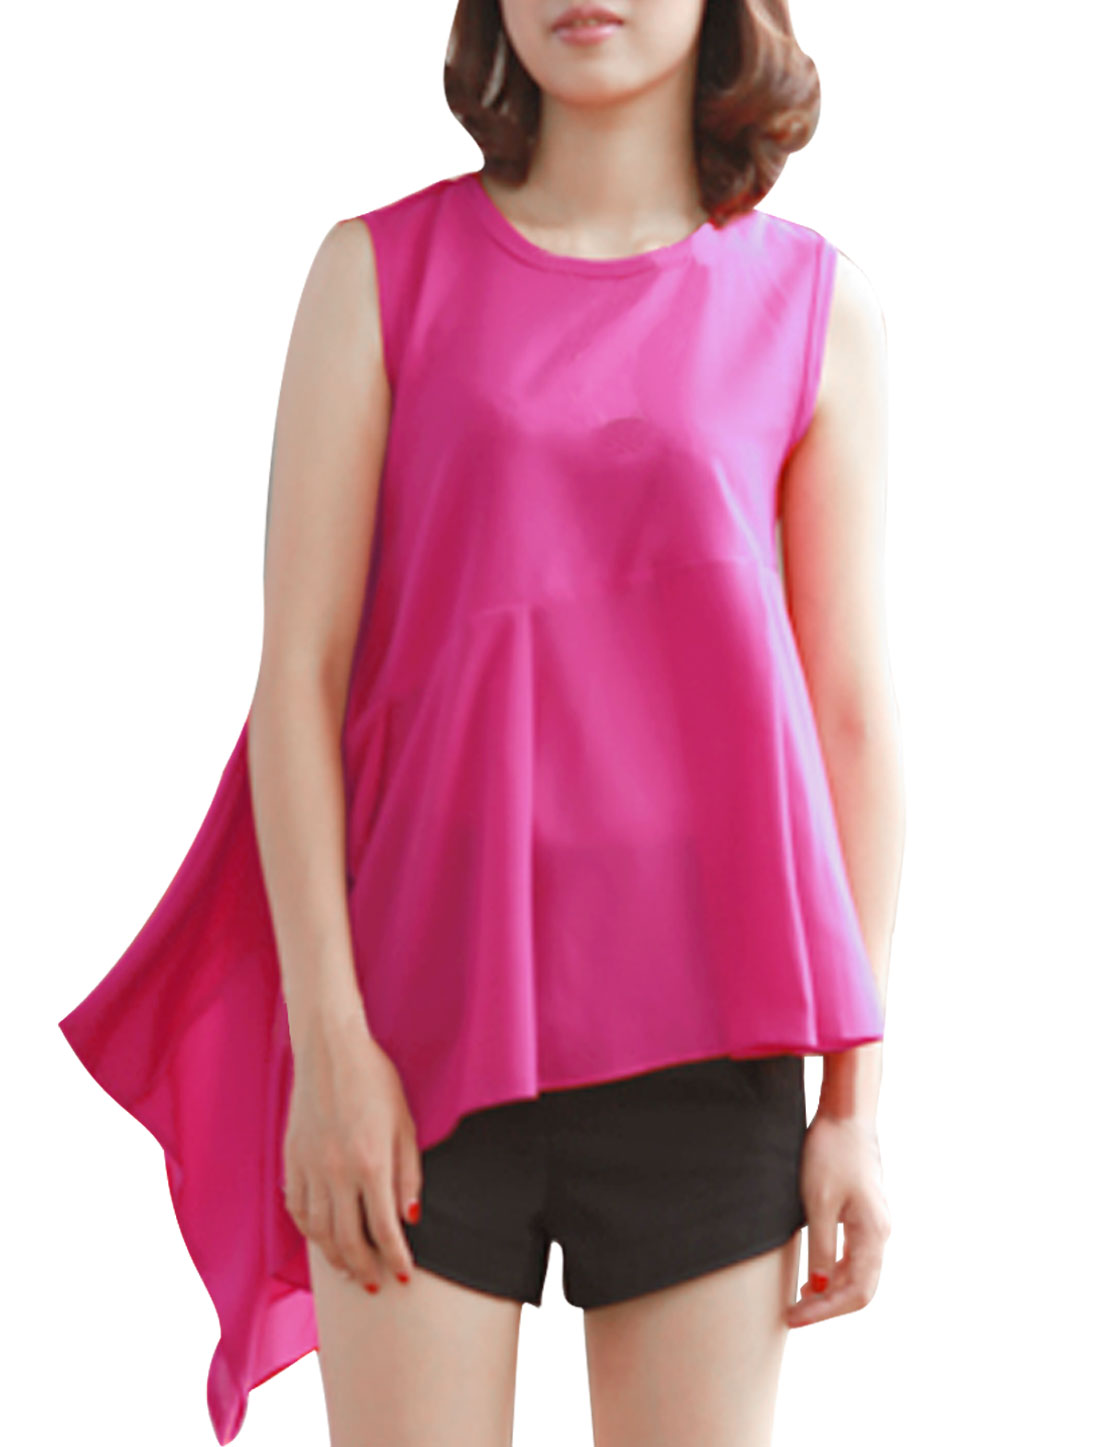 Woman Round Neck Sleeveless Irregular Hem Design Fuchsia Peplum Tops S